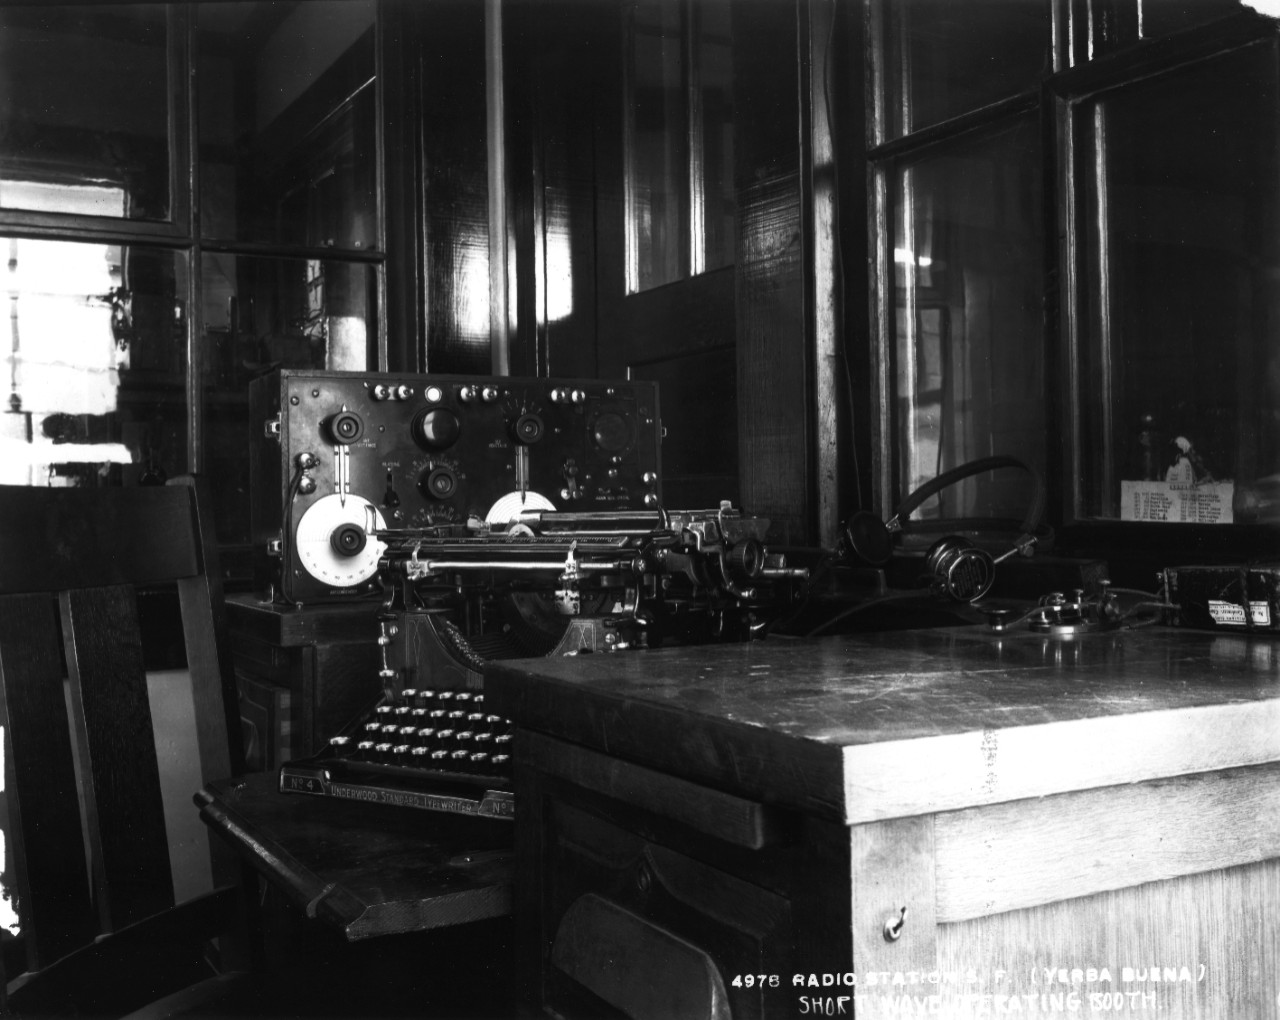 32 photographs (many with copy negatives) of U.S. Naval Radio Station Yerba Buena, San Francisco, California, 1917-1920. Views of interior buildings, towers, and antennae. Interior views of equipment including radio compass, telephone transmitters, receivers, power house, short wave sets, exchange, telegraphone wires, amplifiers, control circuits, transcribing amplifier, rheostats, kleinschmidt installation and perforator.  Some of these are copies made from nitrate negatives that were disposed of.